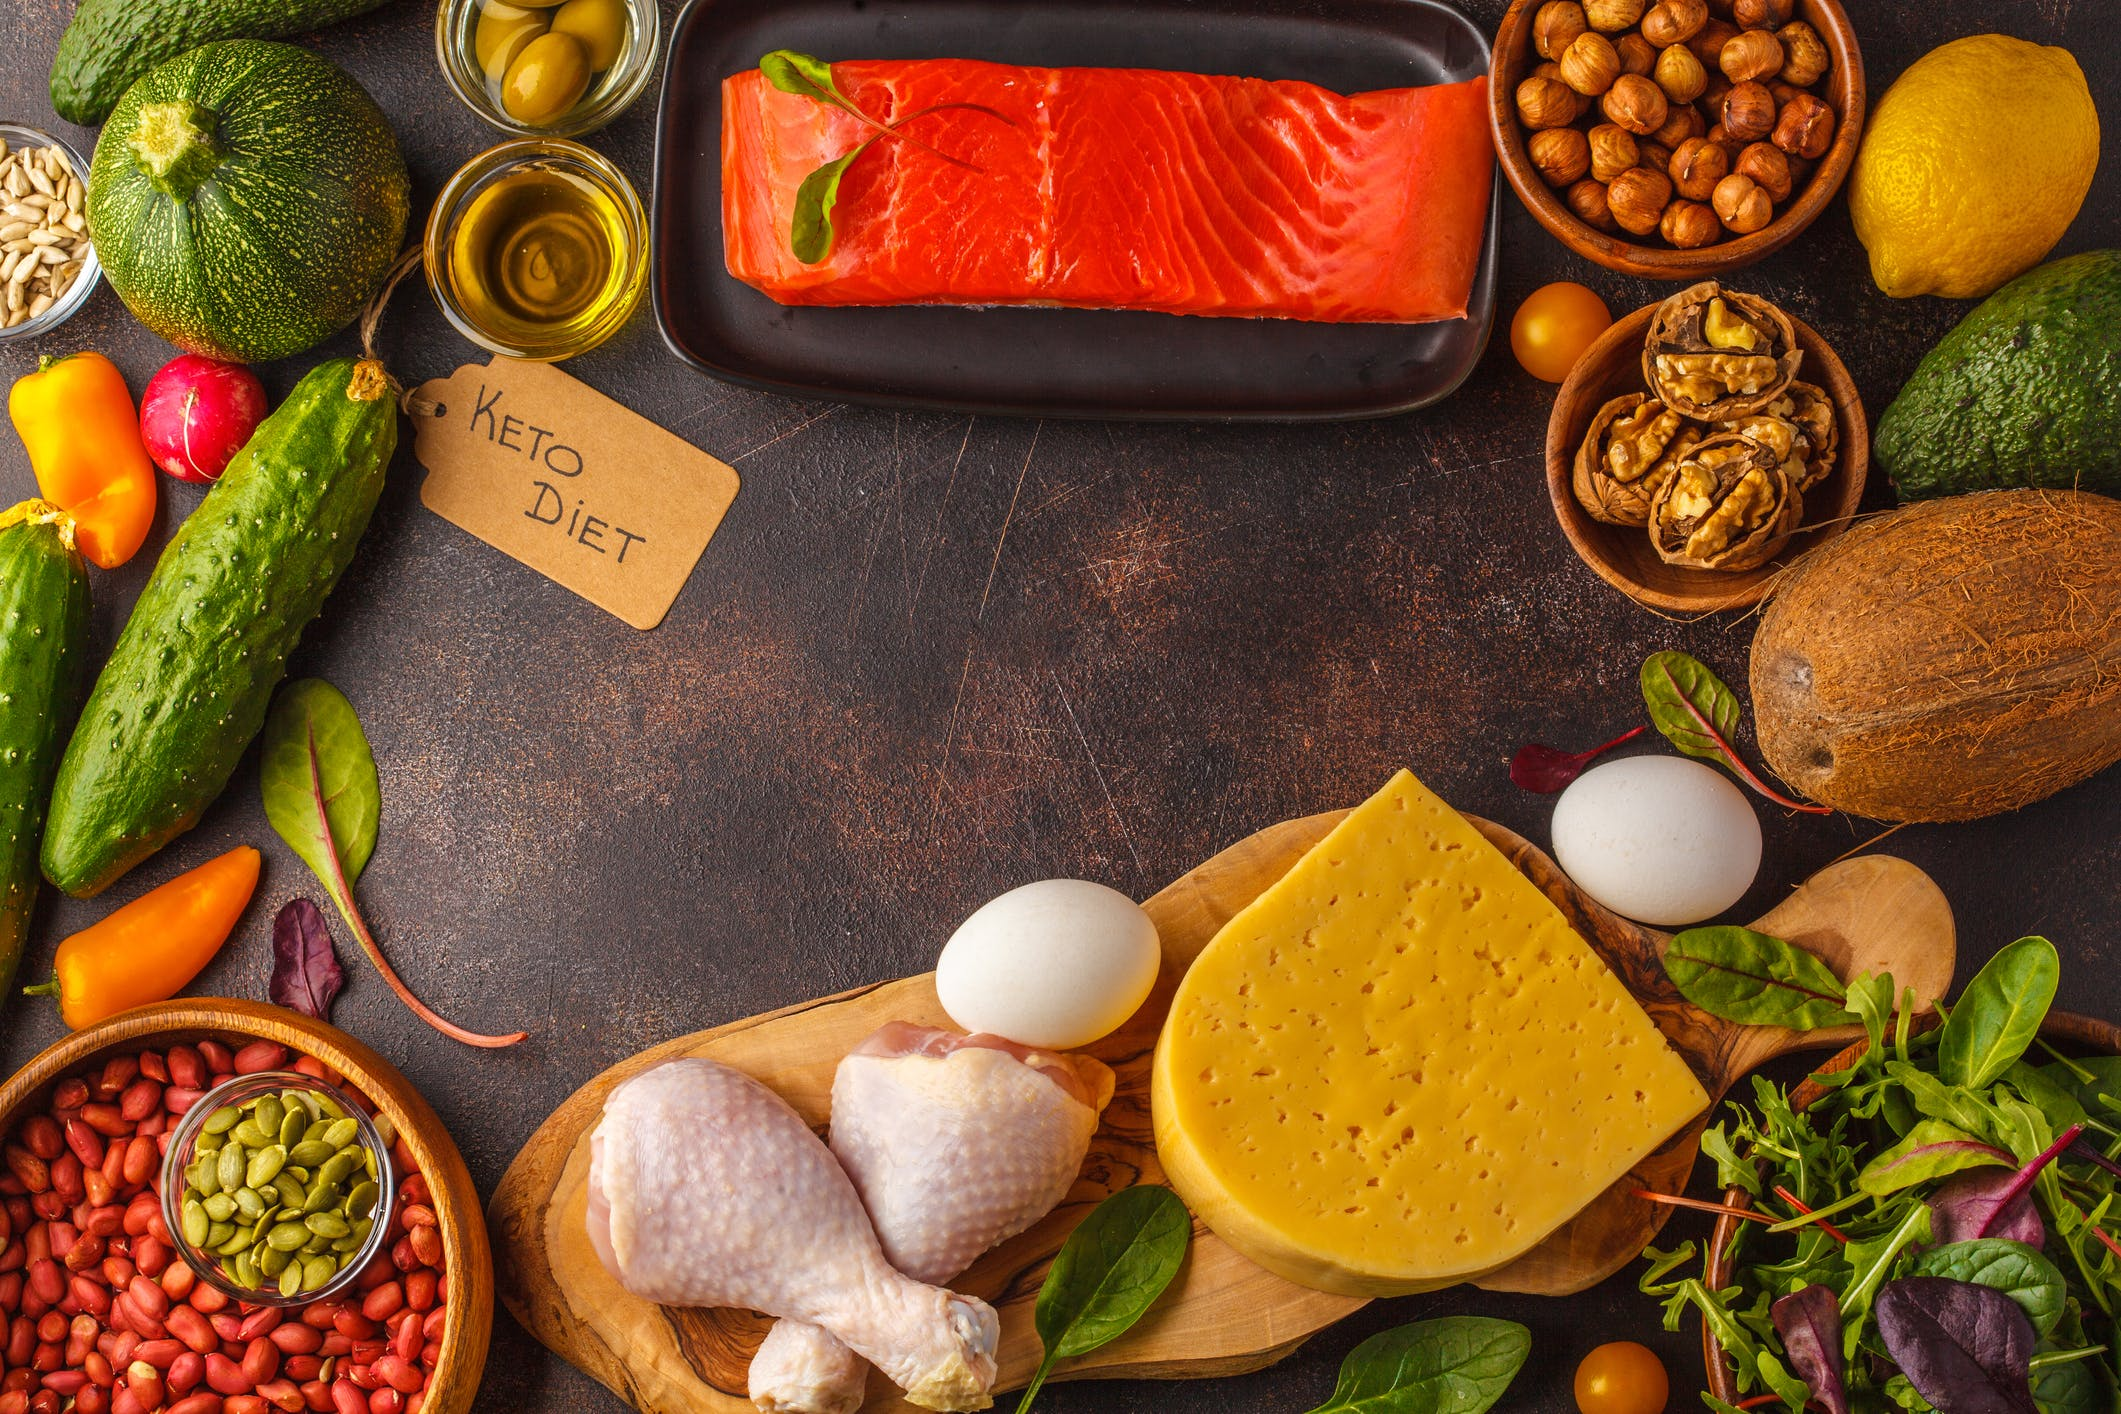 Keto (ketogenic) diet concept. High protein food, food frame background. Vegetables, fish, meat, cheese, nuts on a dark background.